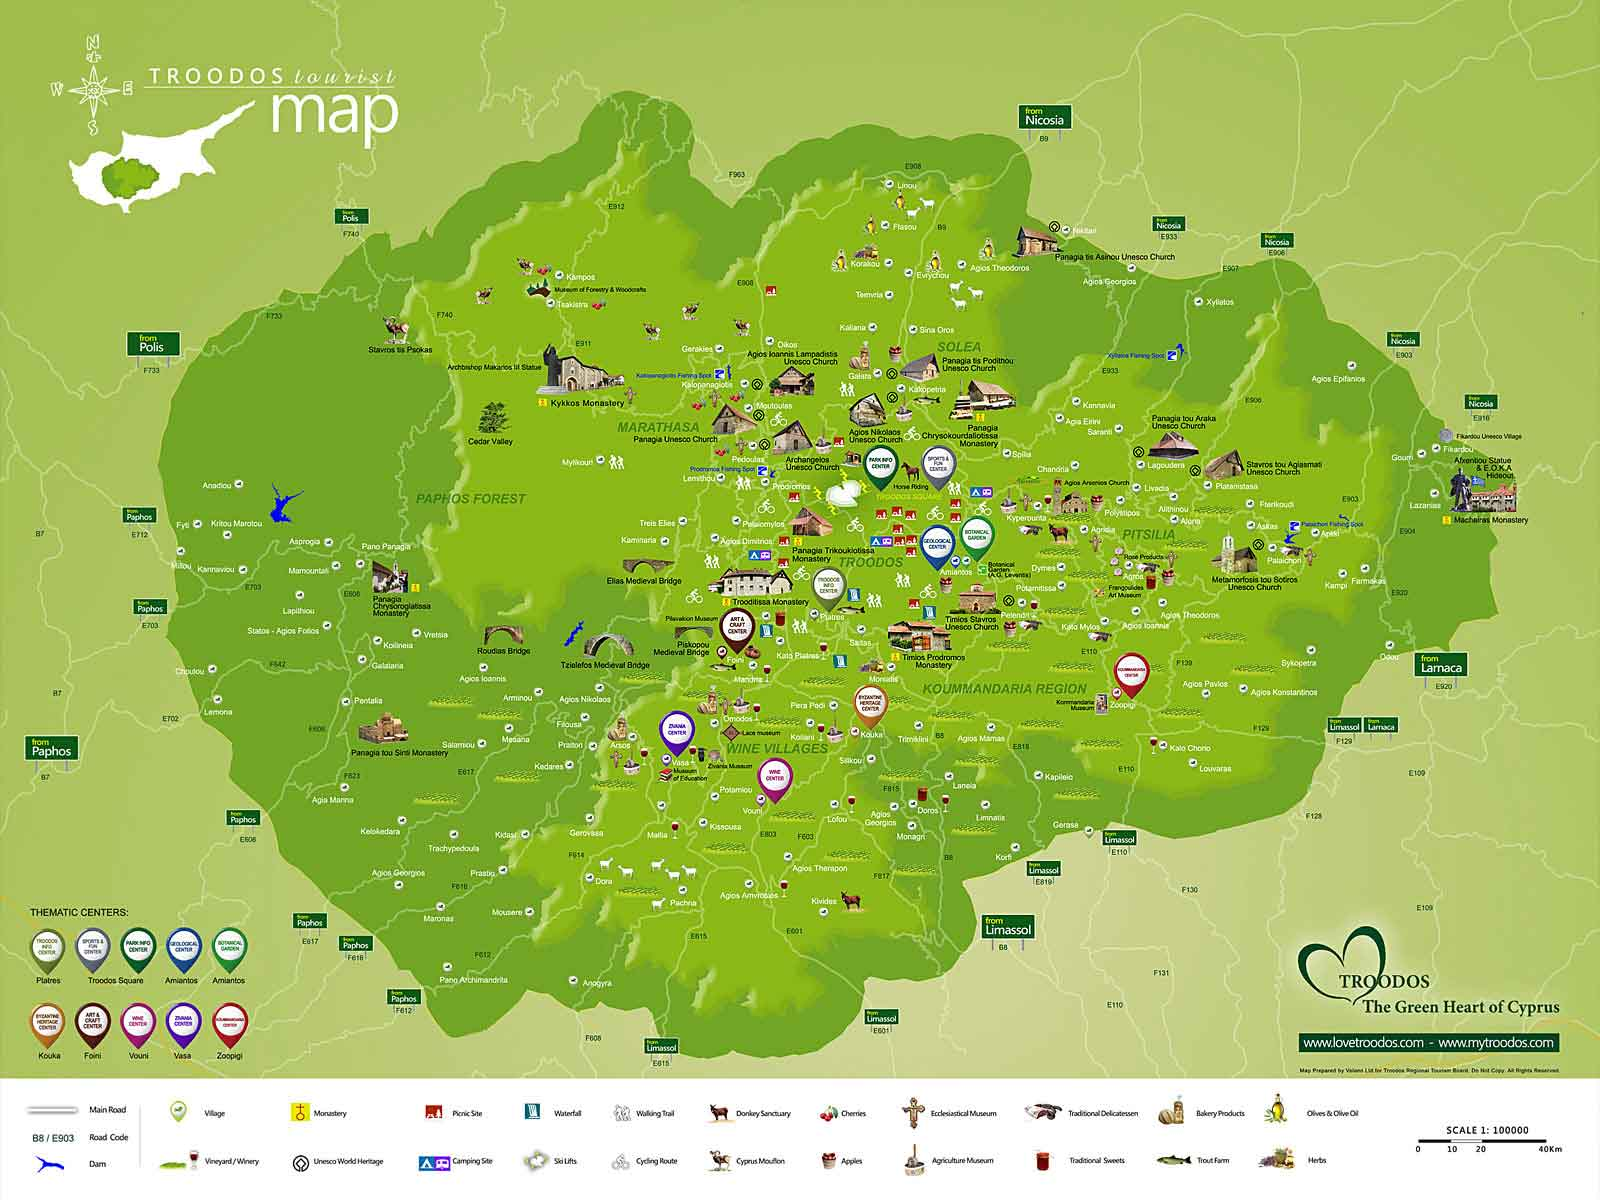 Troodos Maps (General - Thematic)